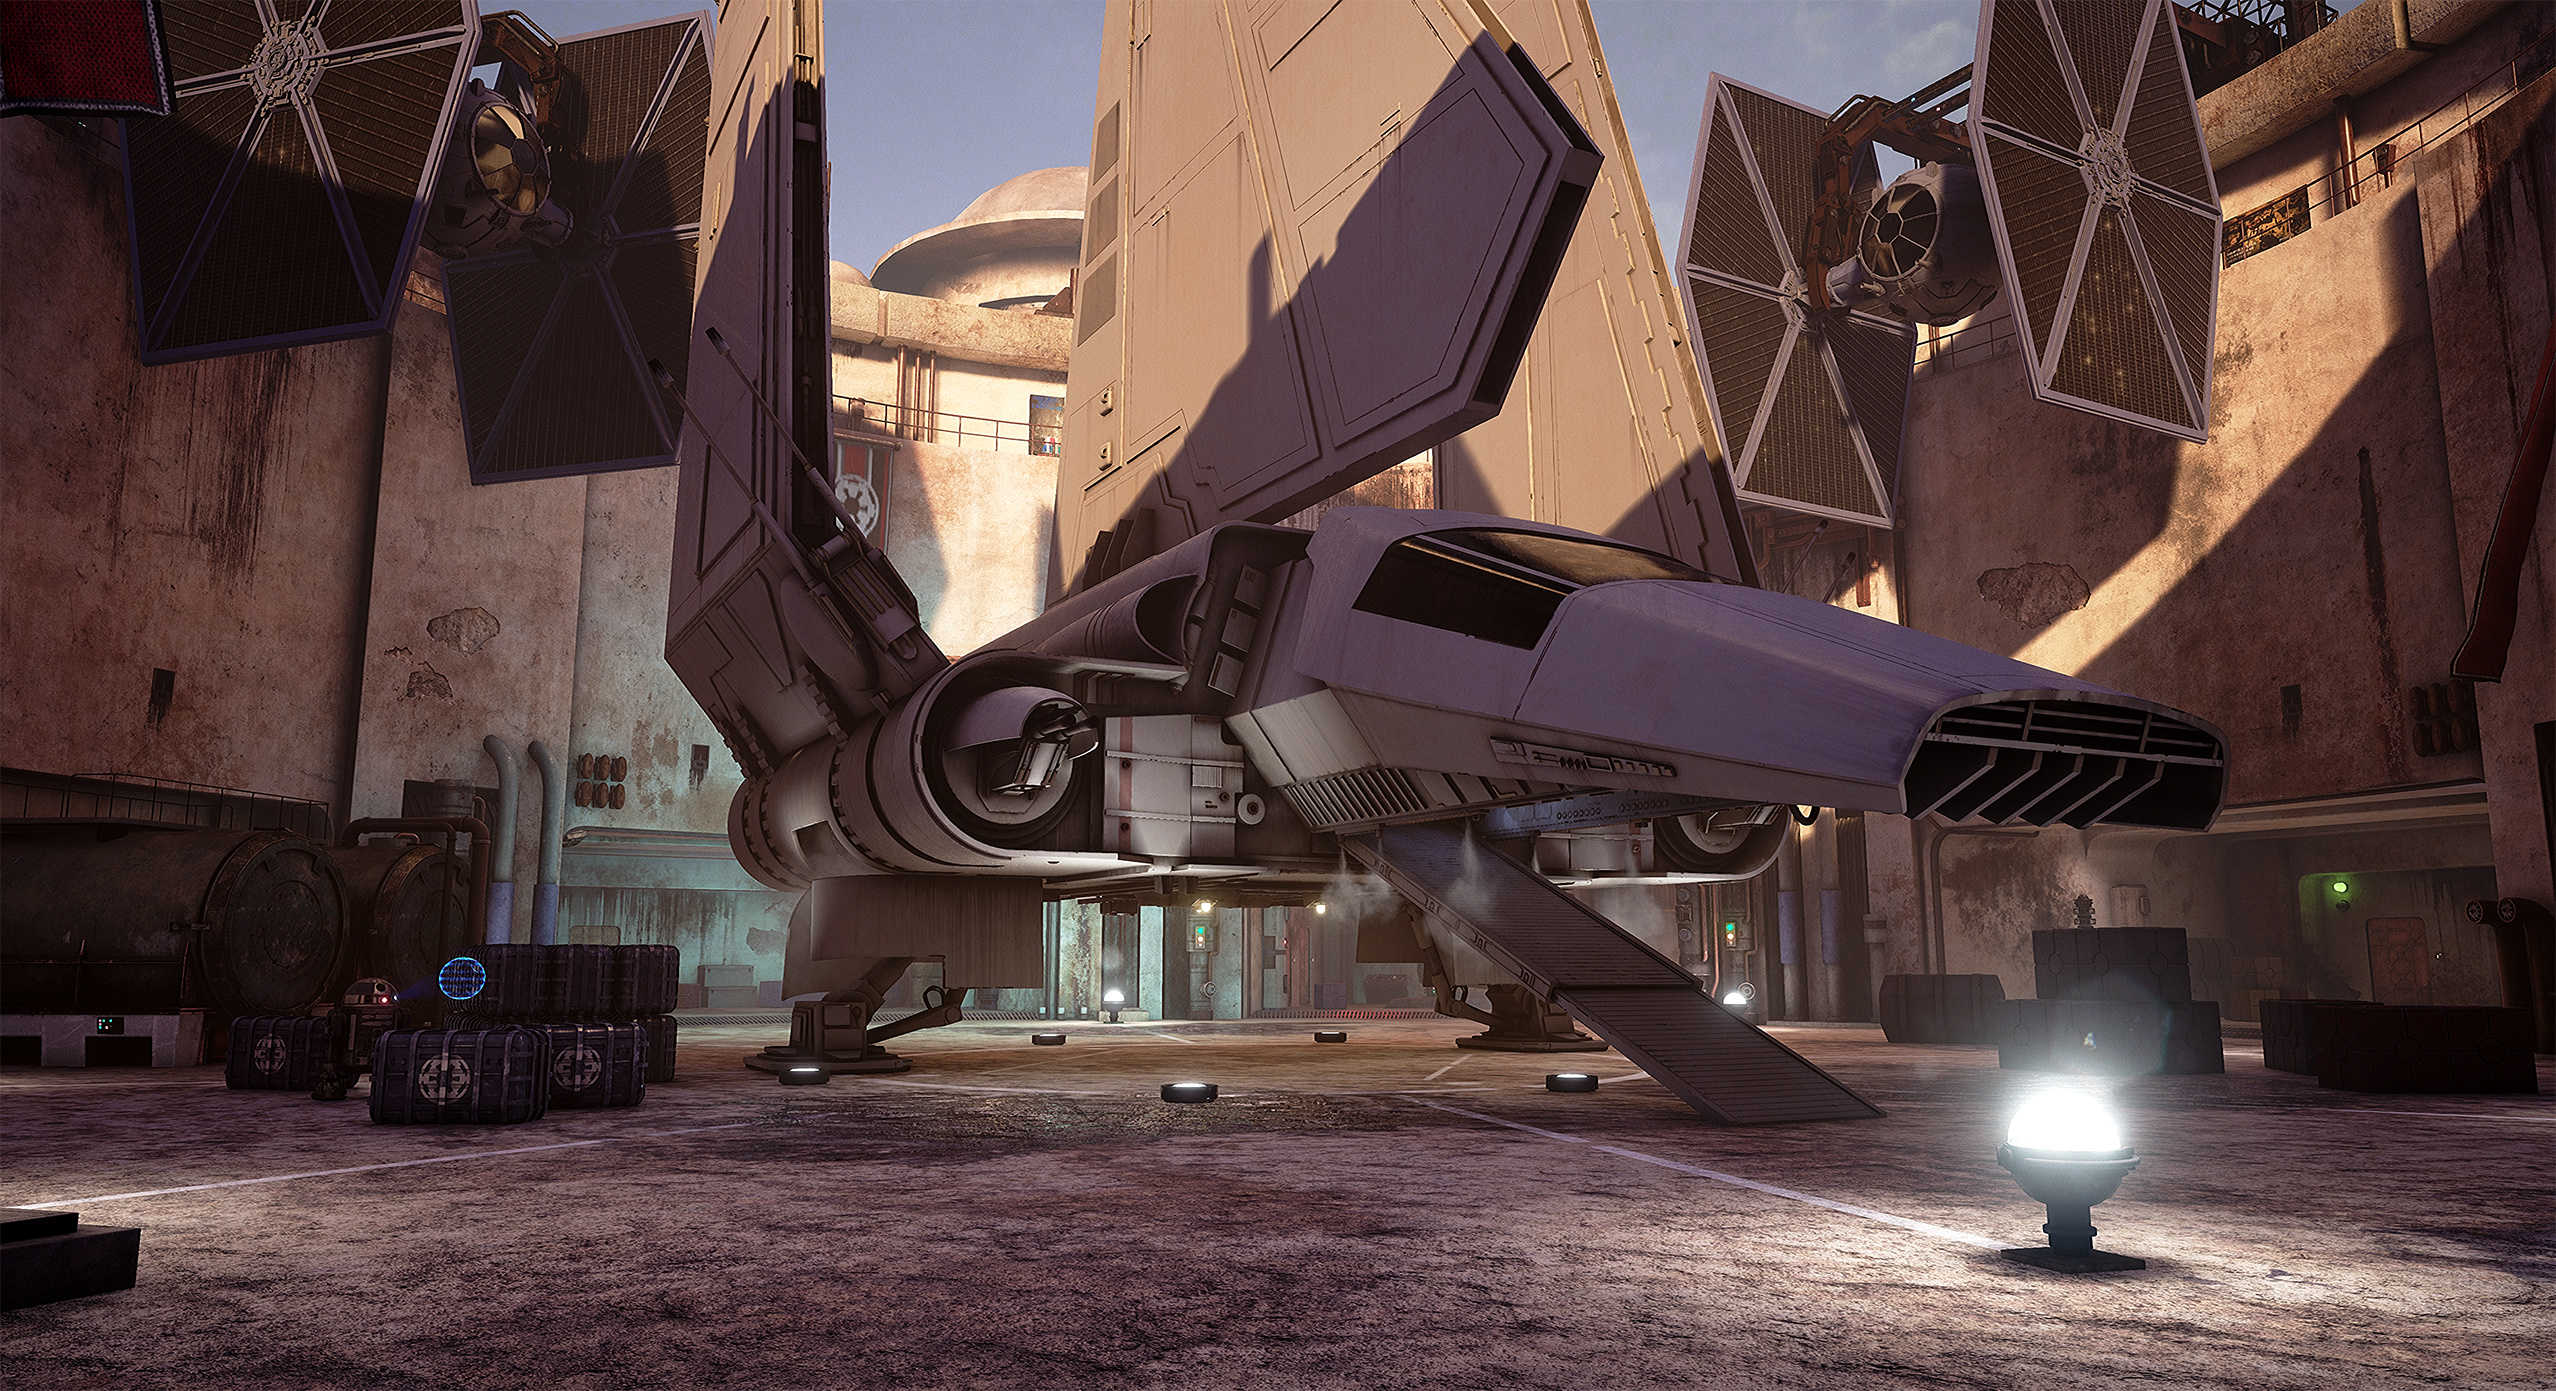 Star Wars Looks Absolutely Stunning On Unreal Engine 4 ky4Xs4C